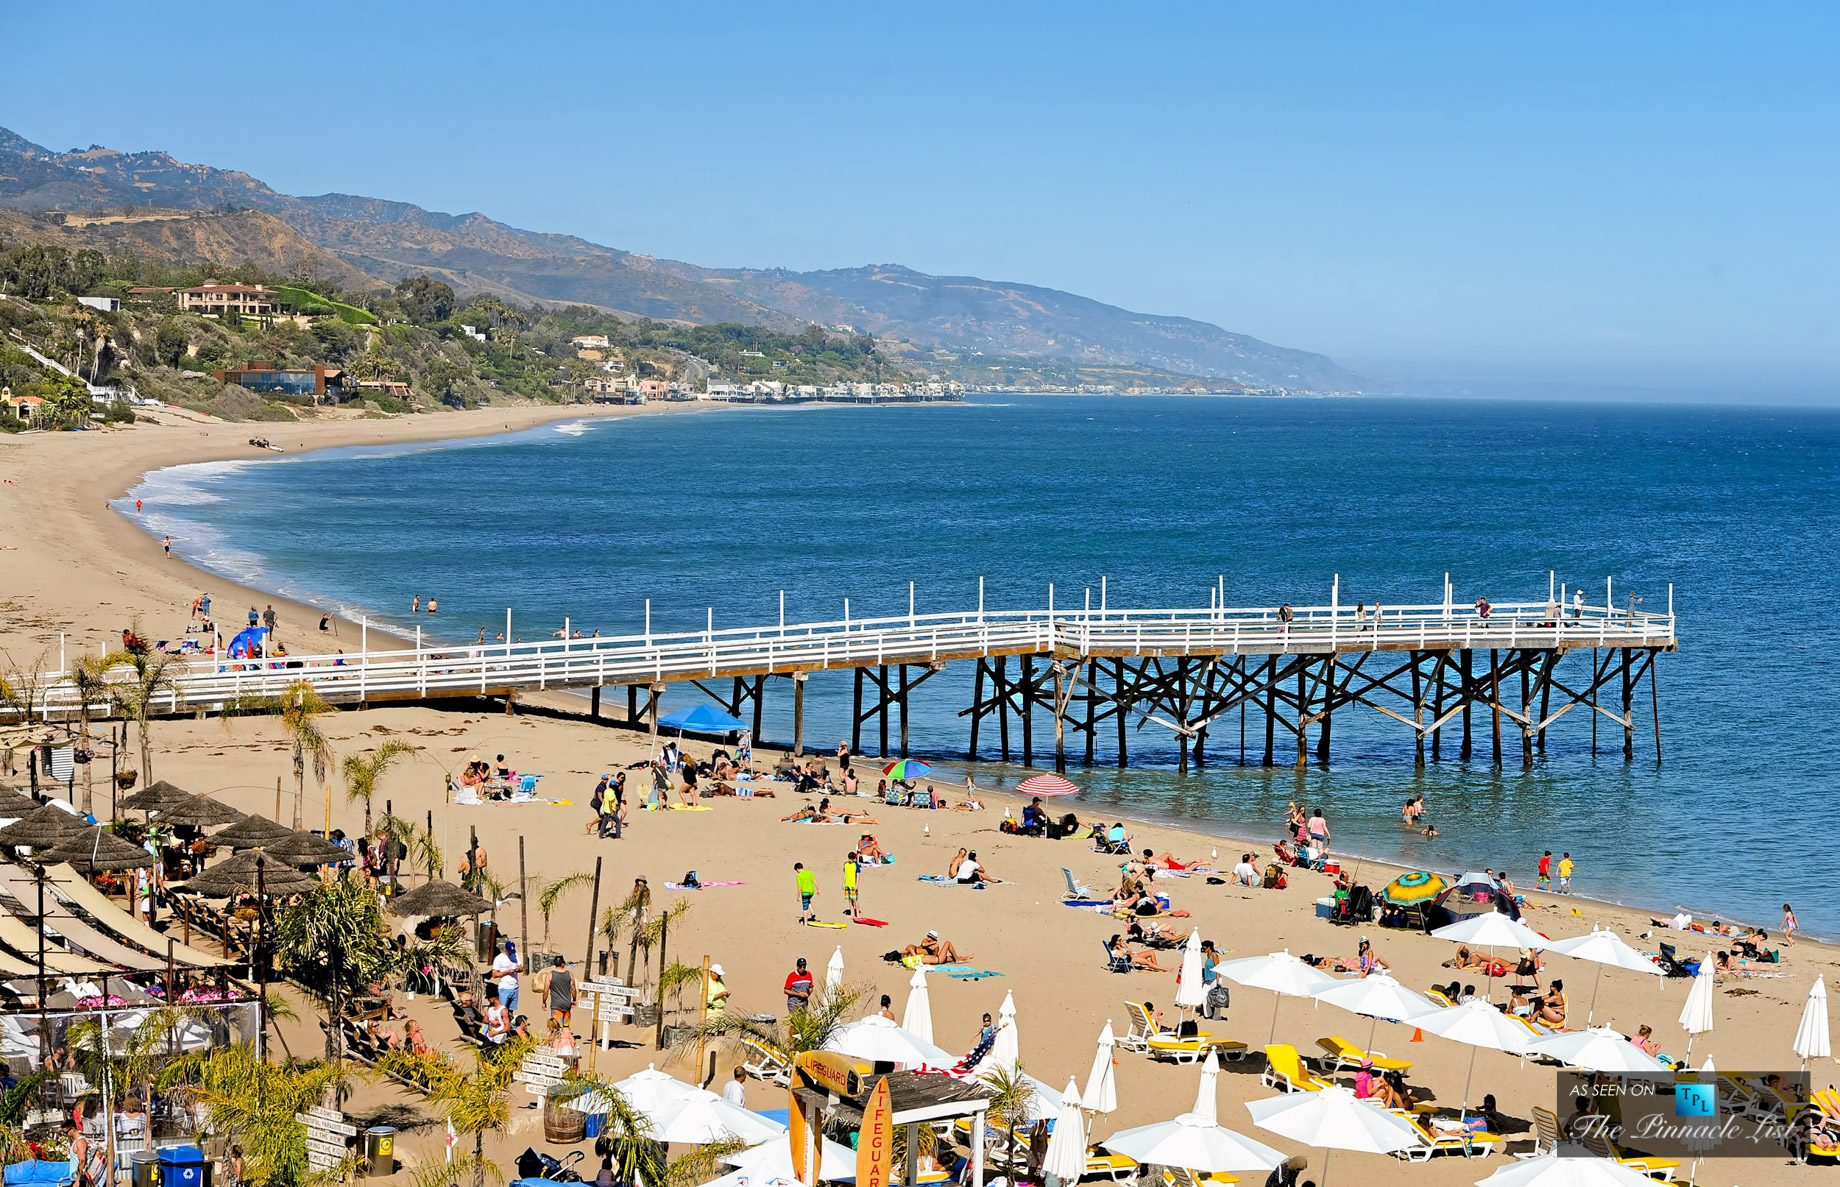 Enjoy the Beach at Paradise Cove Pier - 28128 Pacific Coast Highway Malibu, CA, 90265, USA